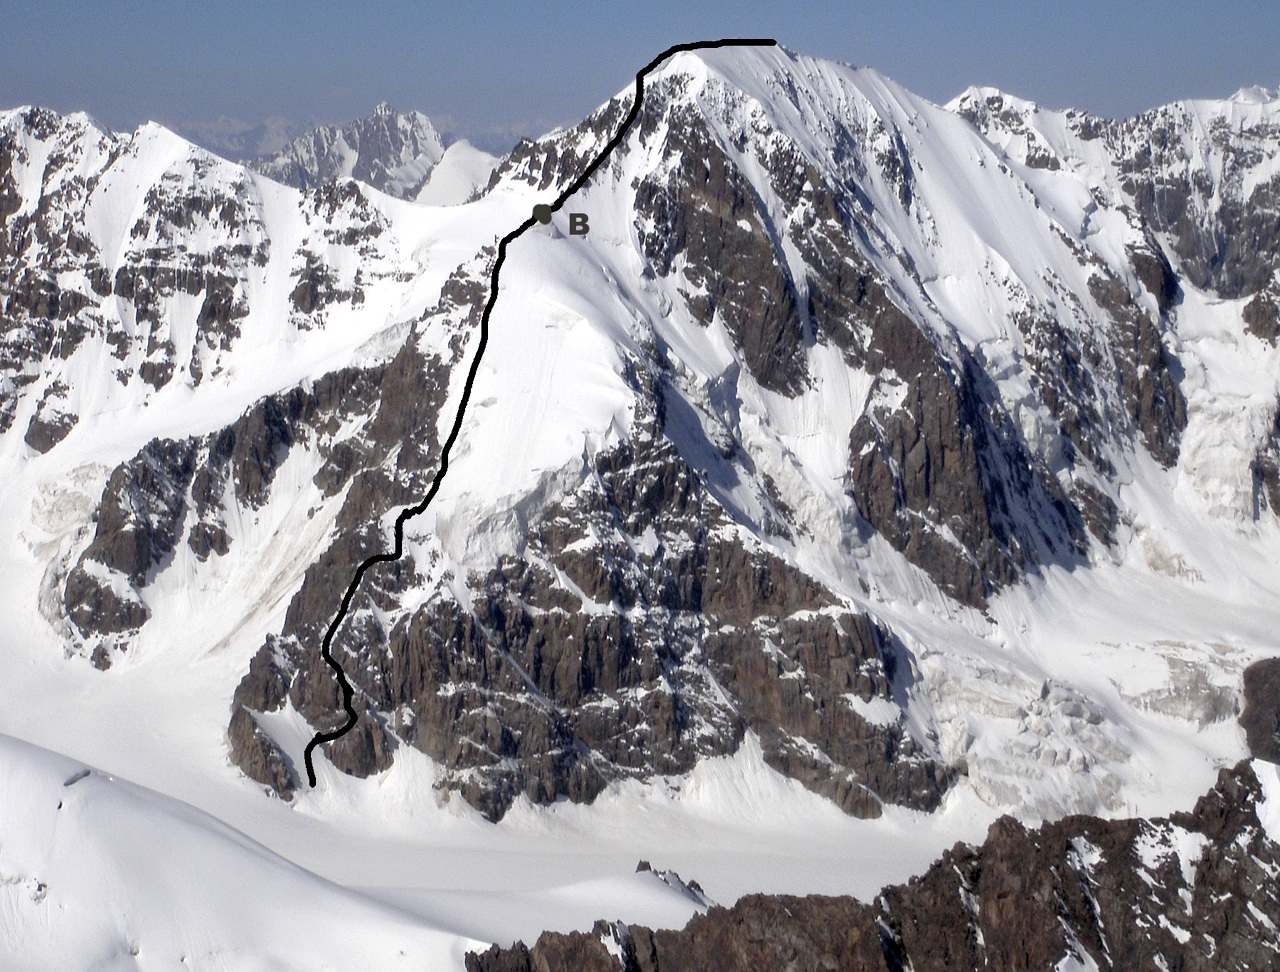 Pik Alexandra from east, with route of first ascent and bivouac.